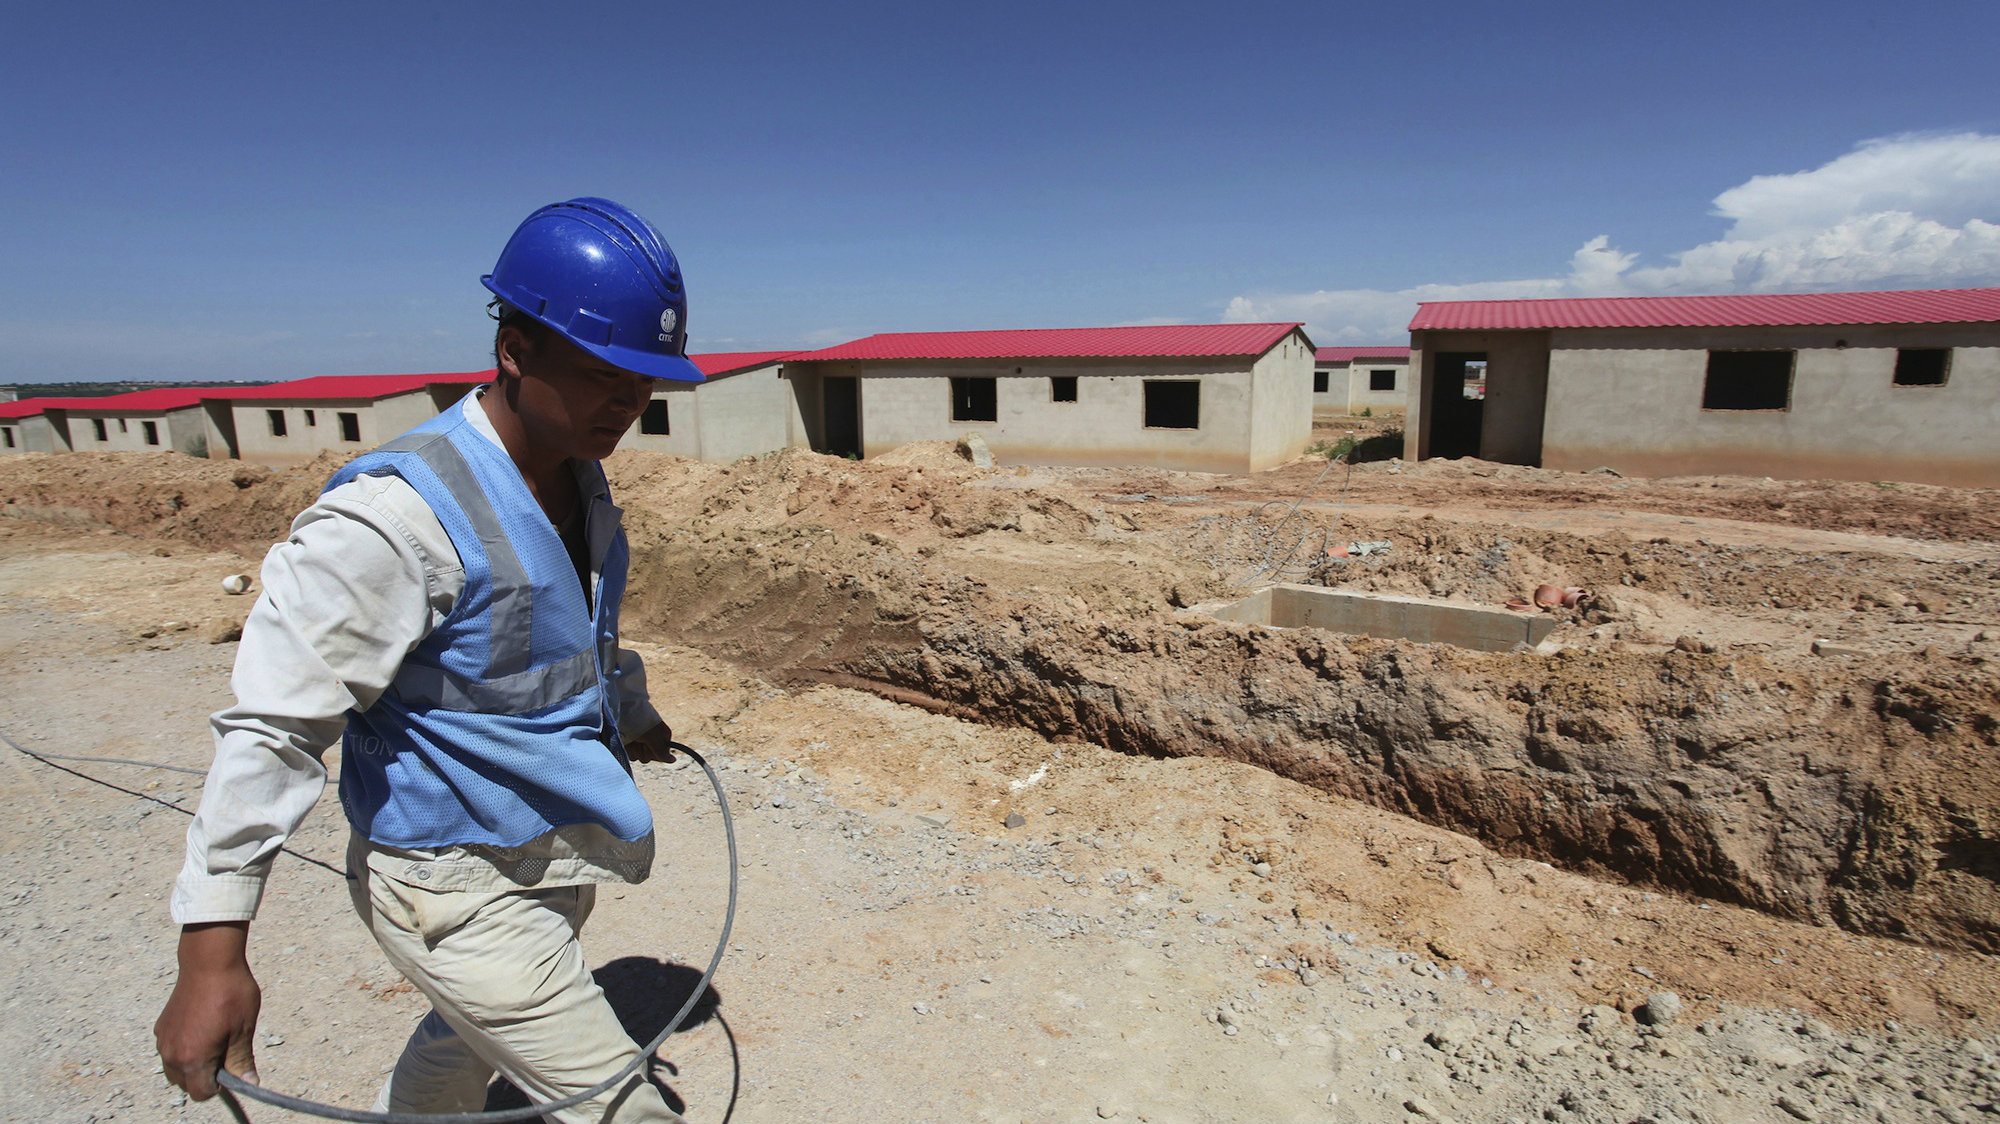 A Chinese worker at a construction site in Lubango, Angola.